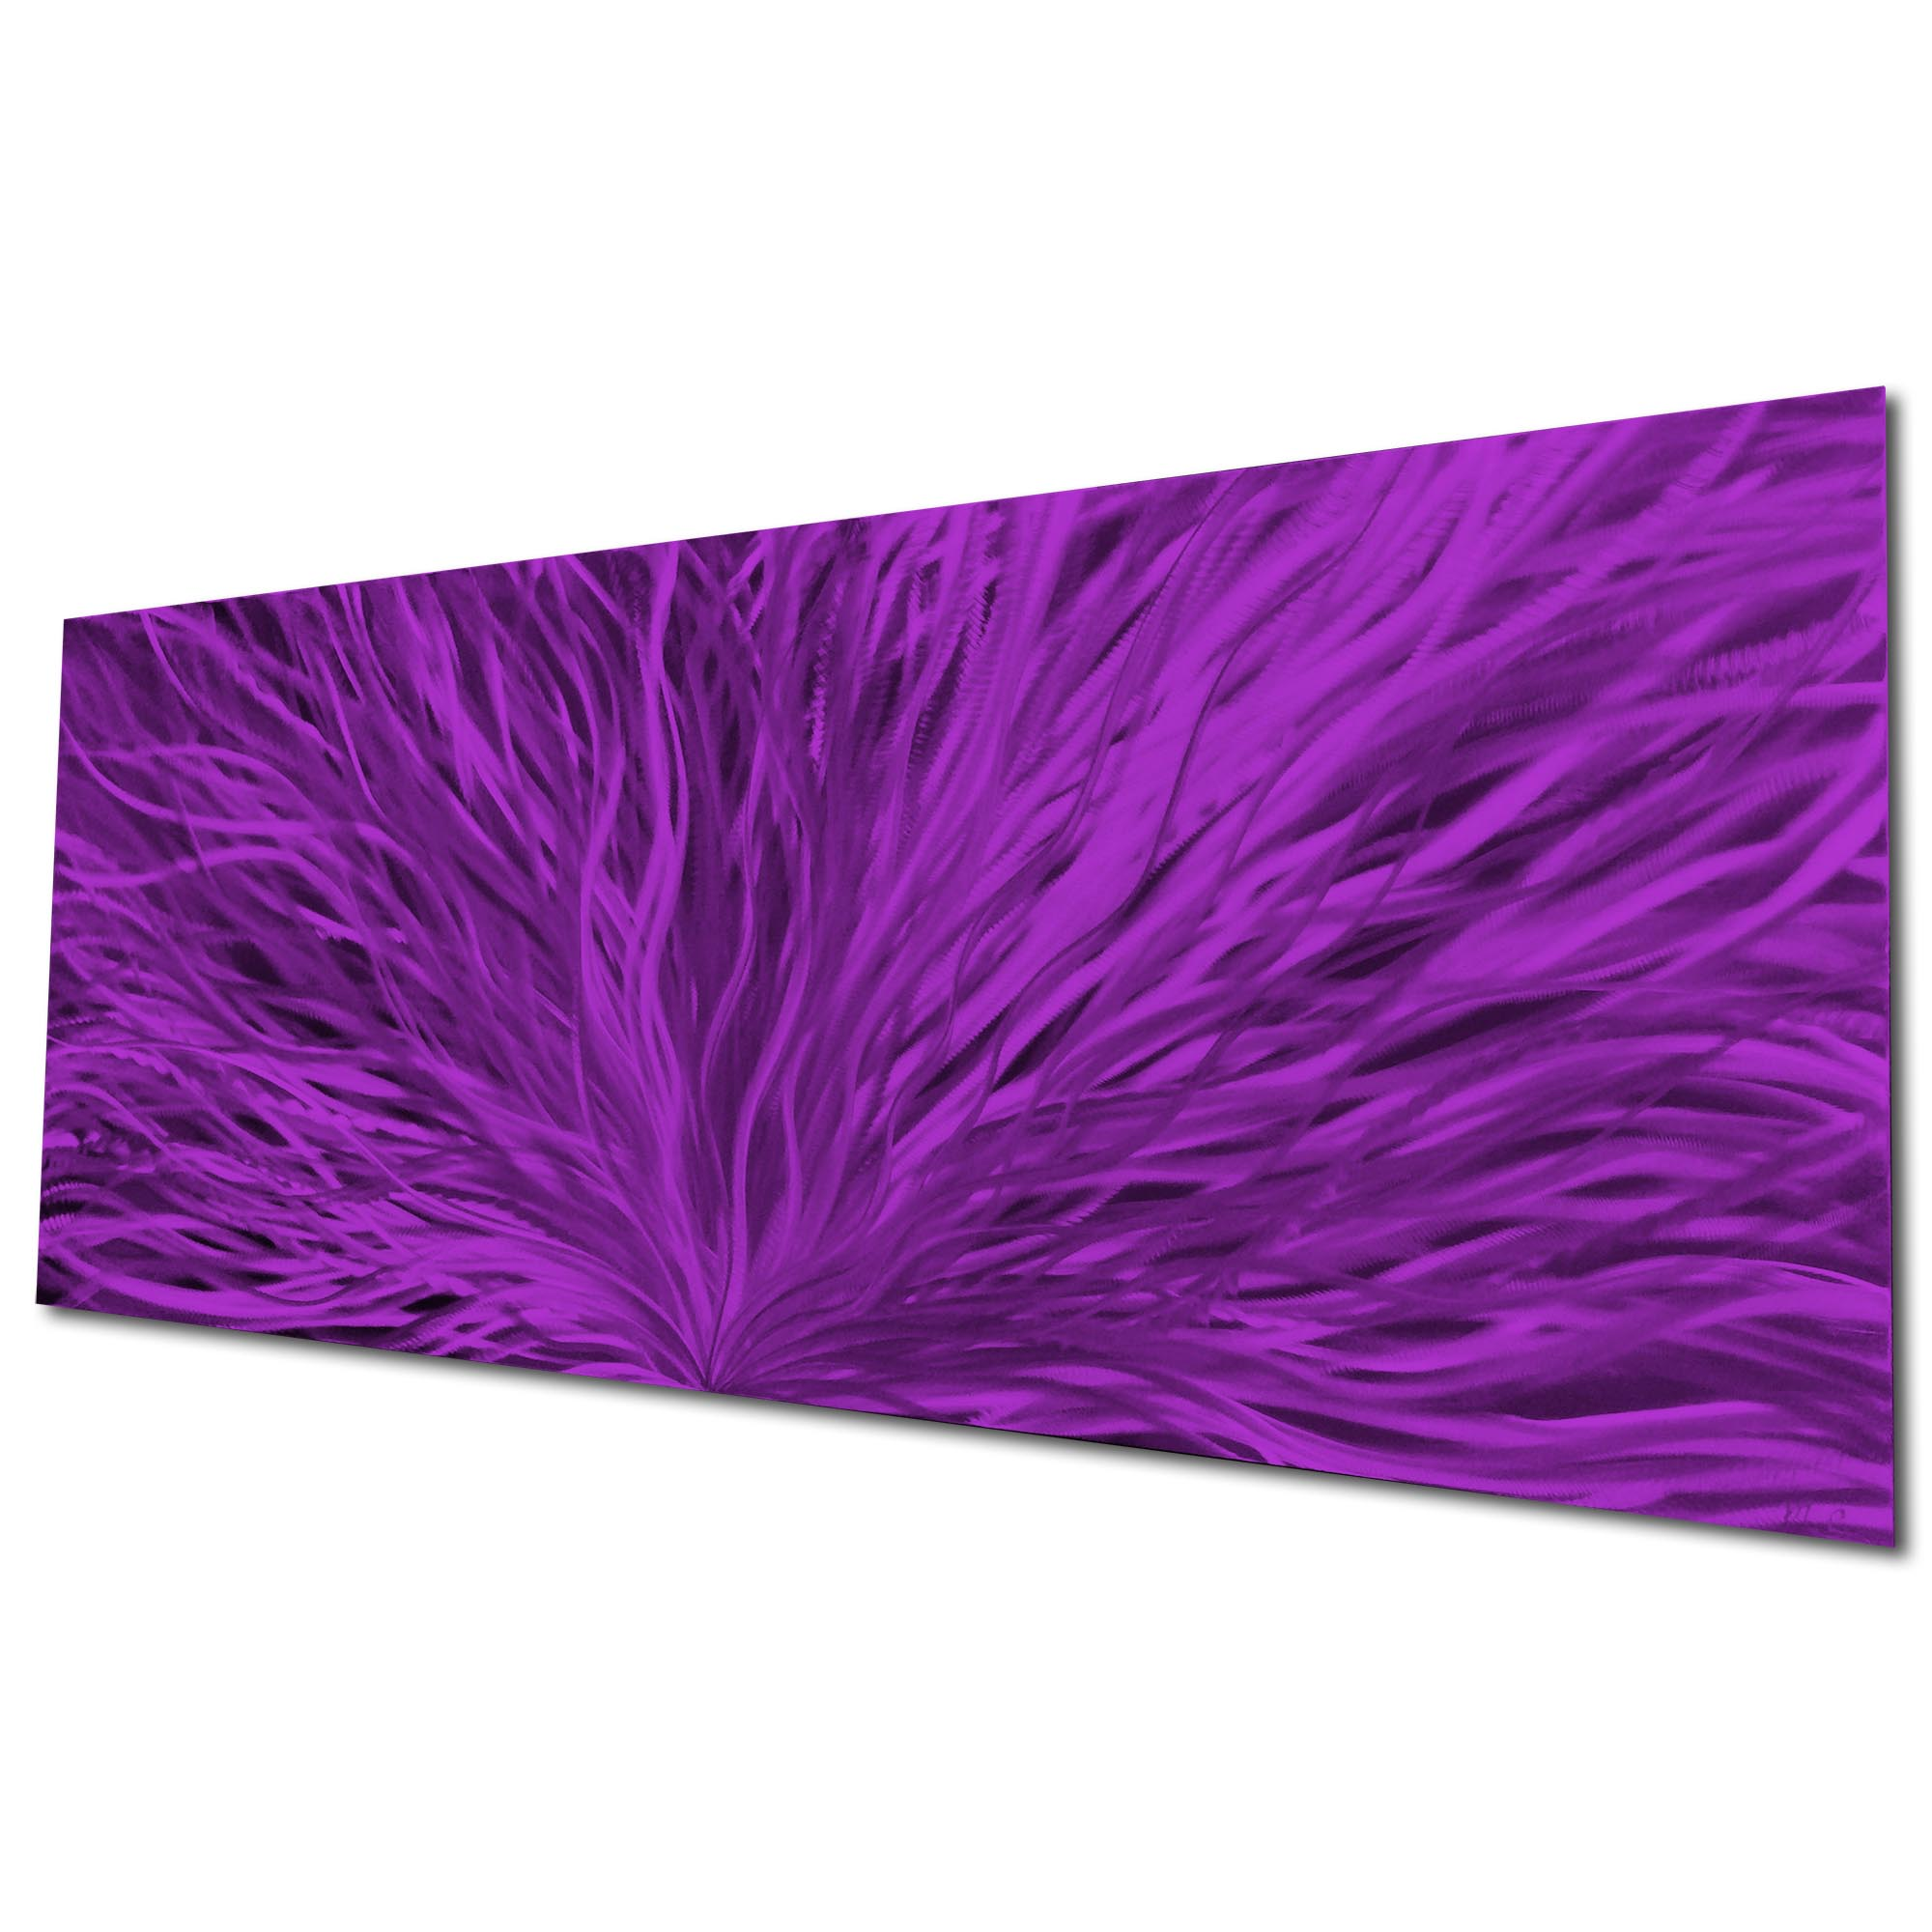 Blooming Purple by Helena Martin - Original Abstract Art on Ground and Painted Metal - Image 3